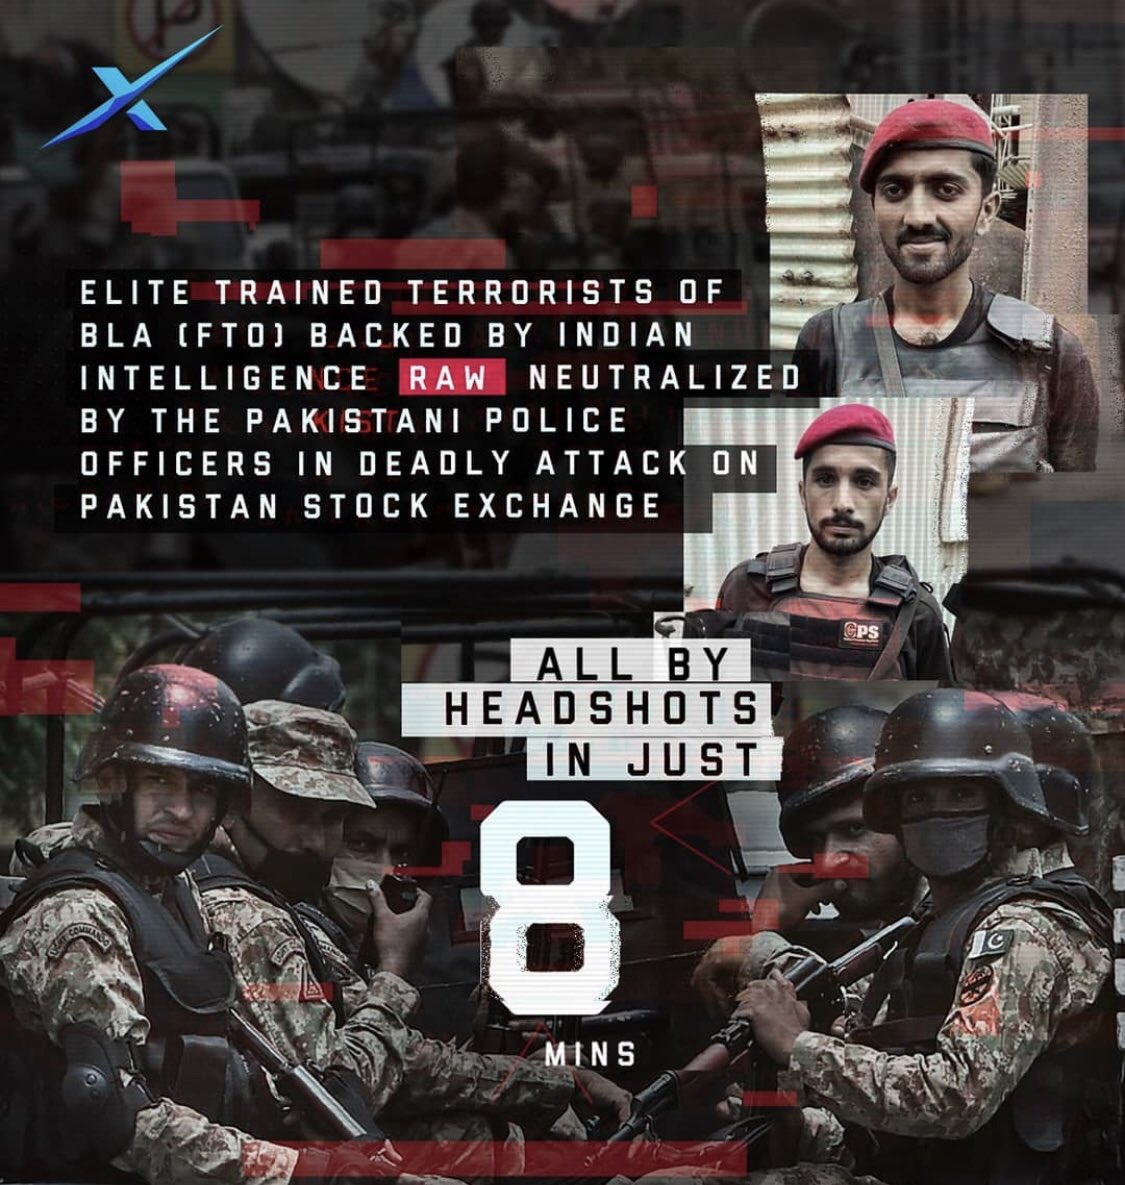 #IndiaSponsoringTerrorism Security forces killed the terrorists in just 8 minutes...This quick response of the forces saved lives of many innocent people...We are proud of you heroes  @TheTeamPatriot<br>http://pic.twitter.com/jip8RGwXp7